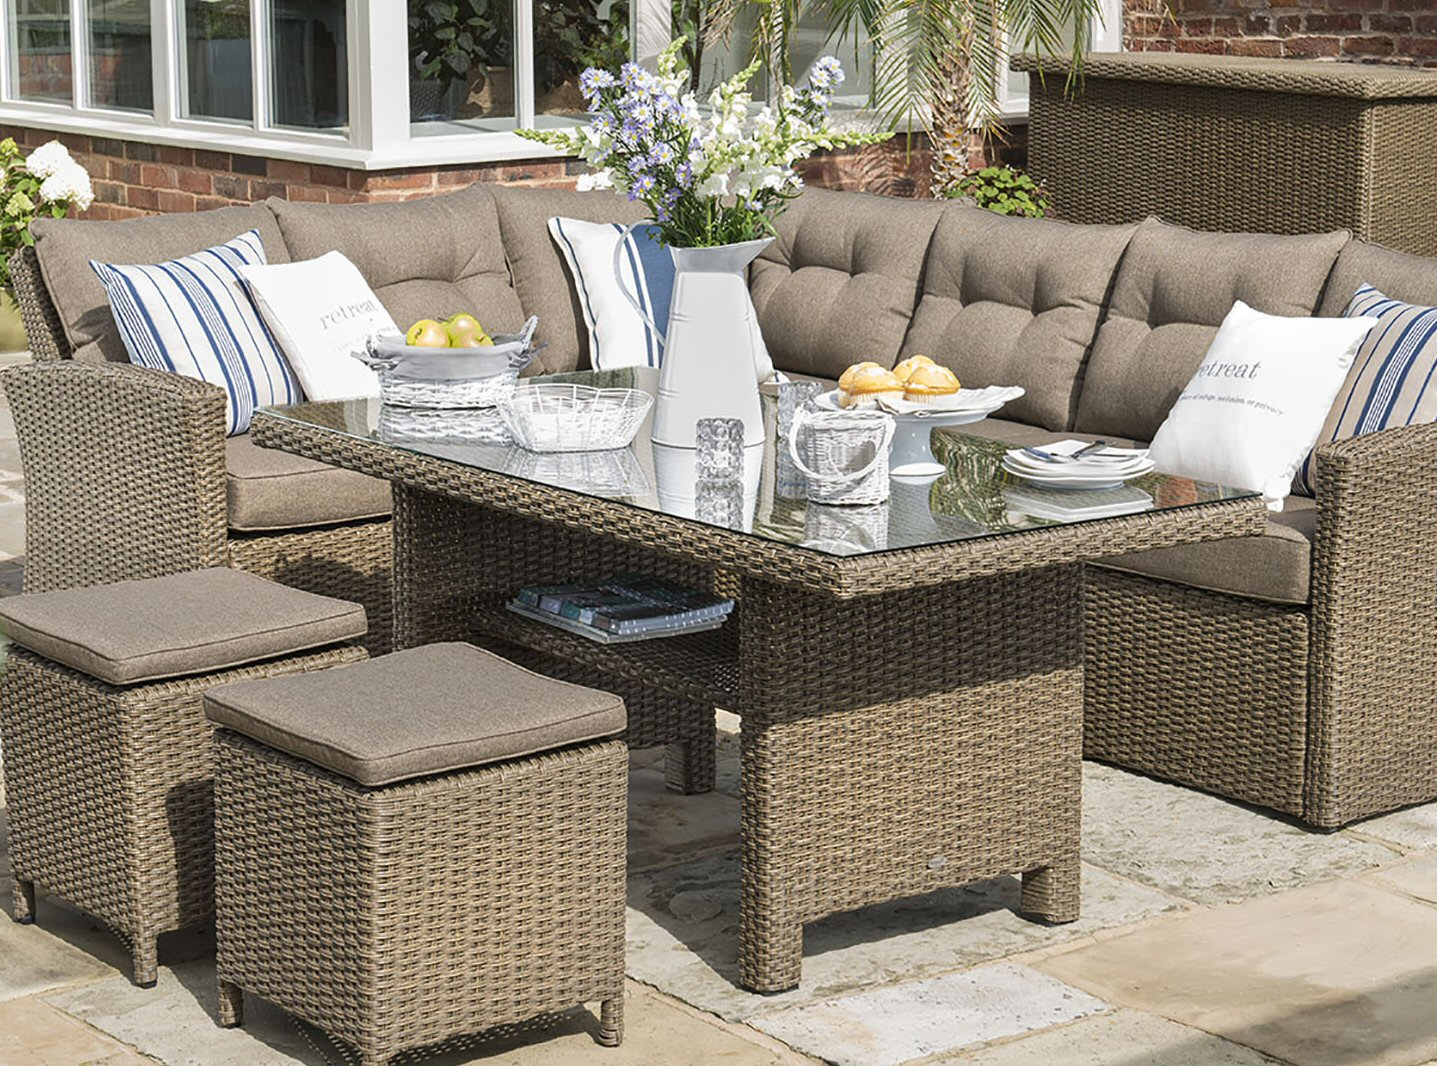 Rattan Corner Sofa Ireland Rattan Garden Furniture Ireland Garden Furniture